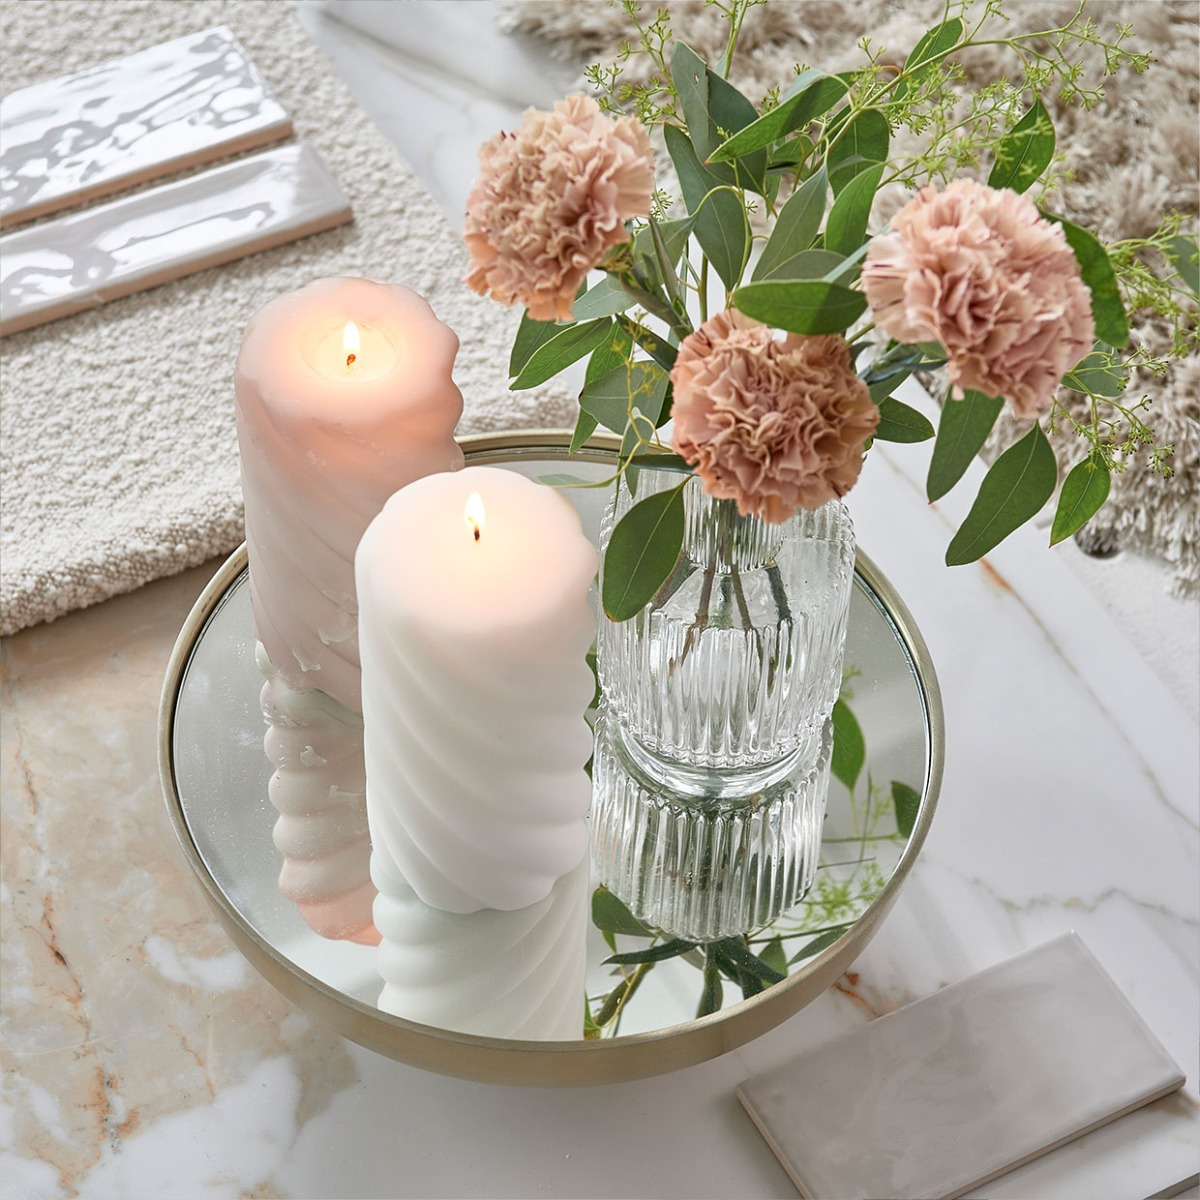 Flowers with candle